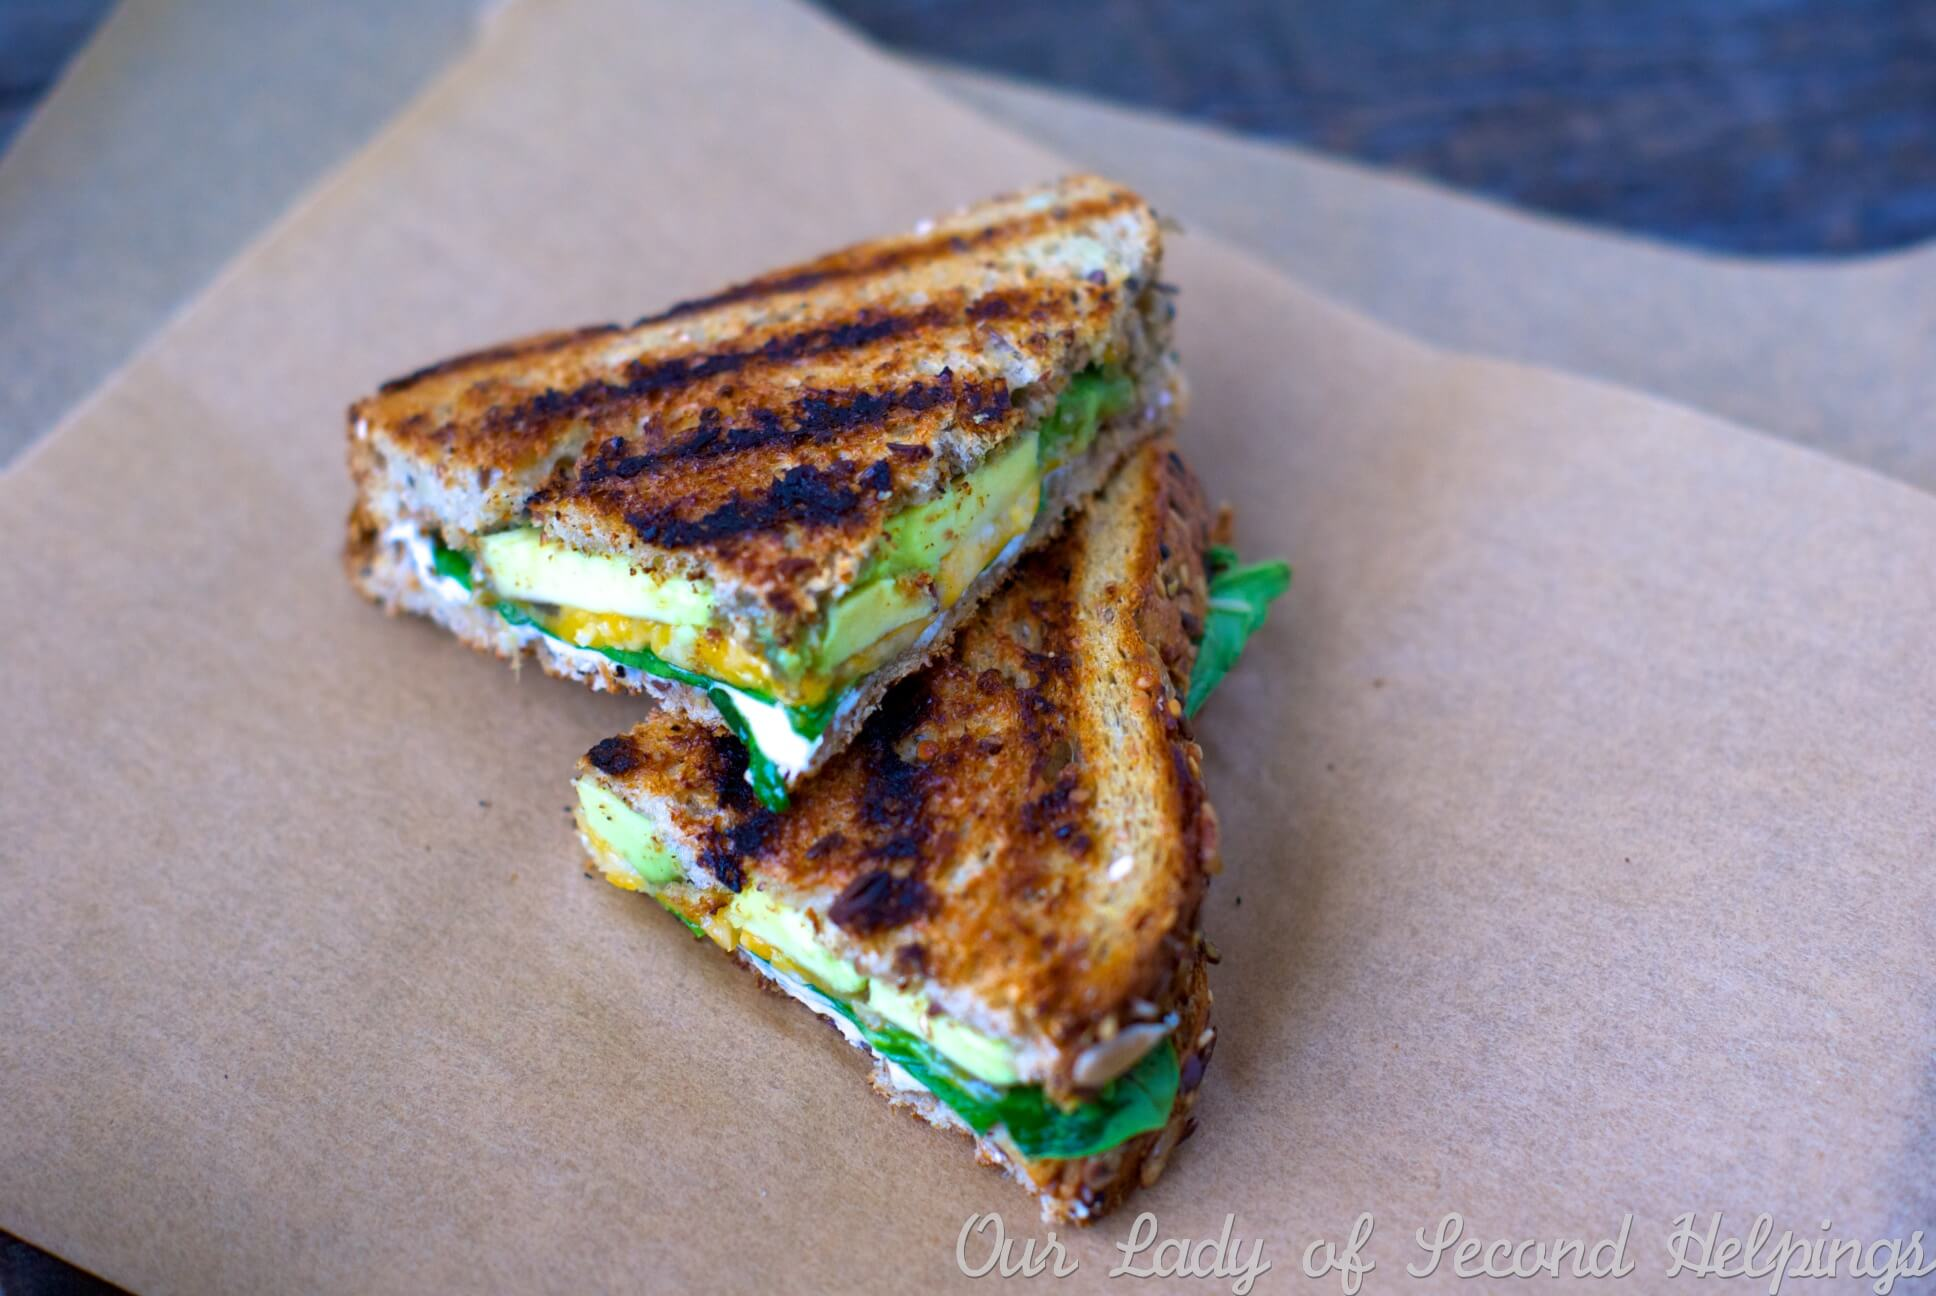 Three cheeses creamy avocado and toasty multi-grain bread make this avocado grilled cheese sandwich an indulgent lunch time treat.